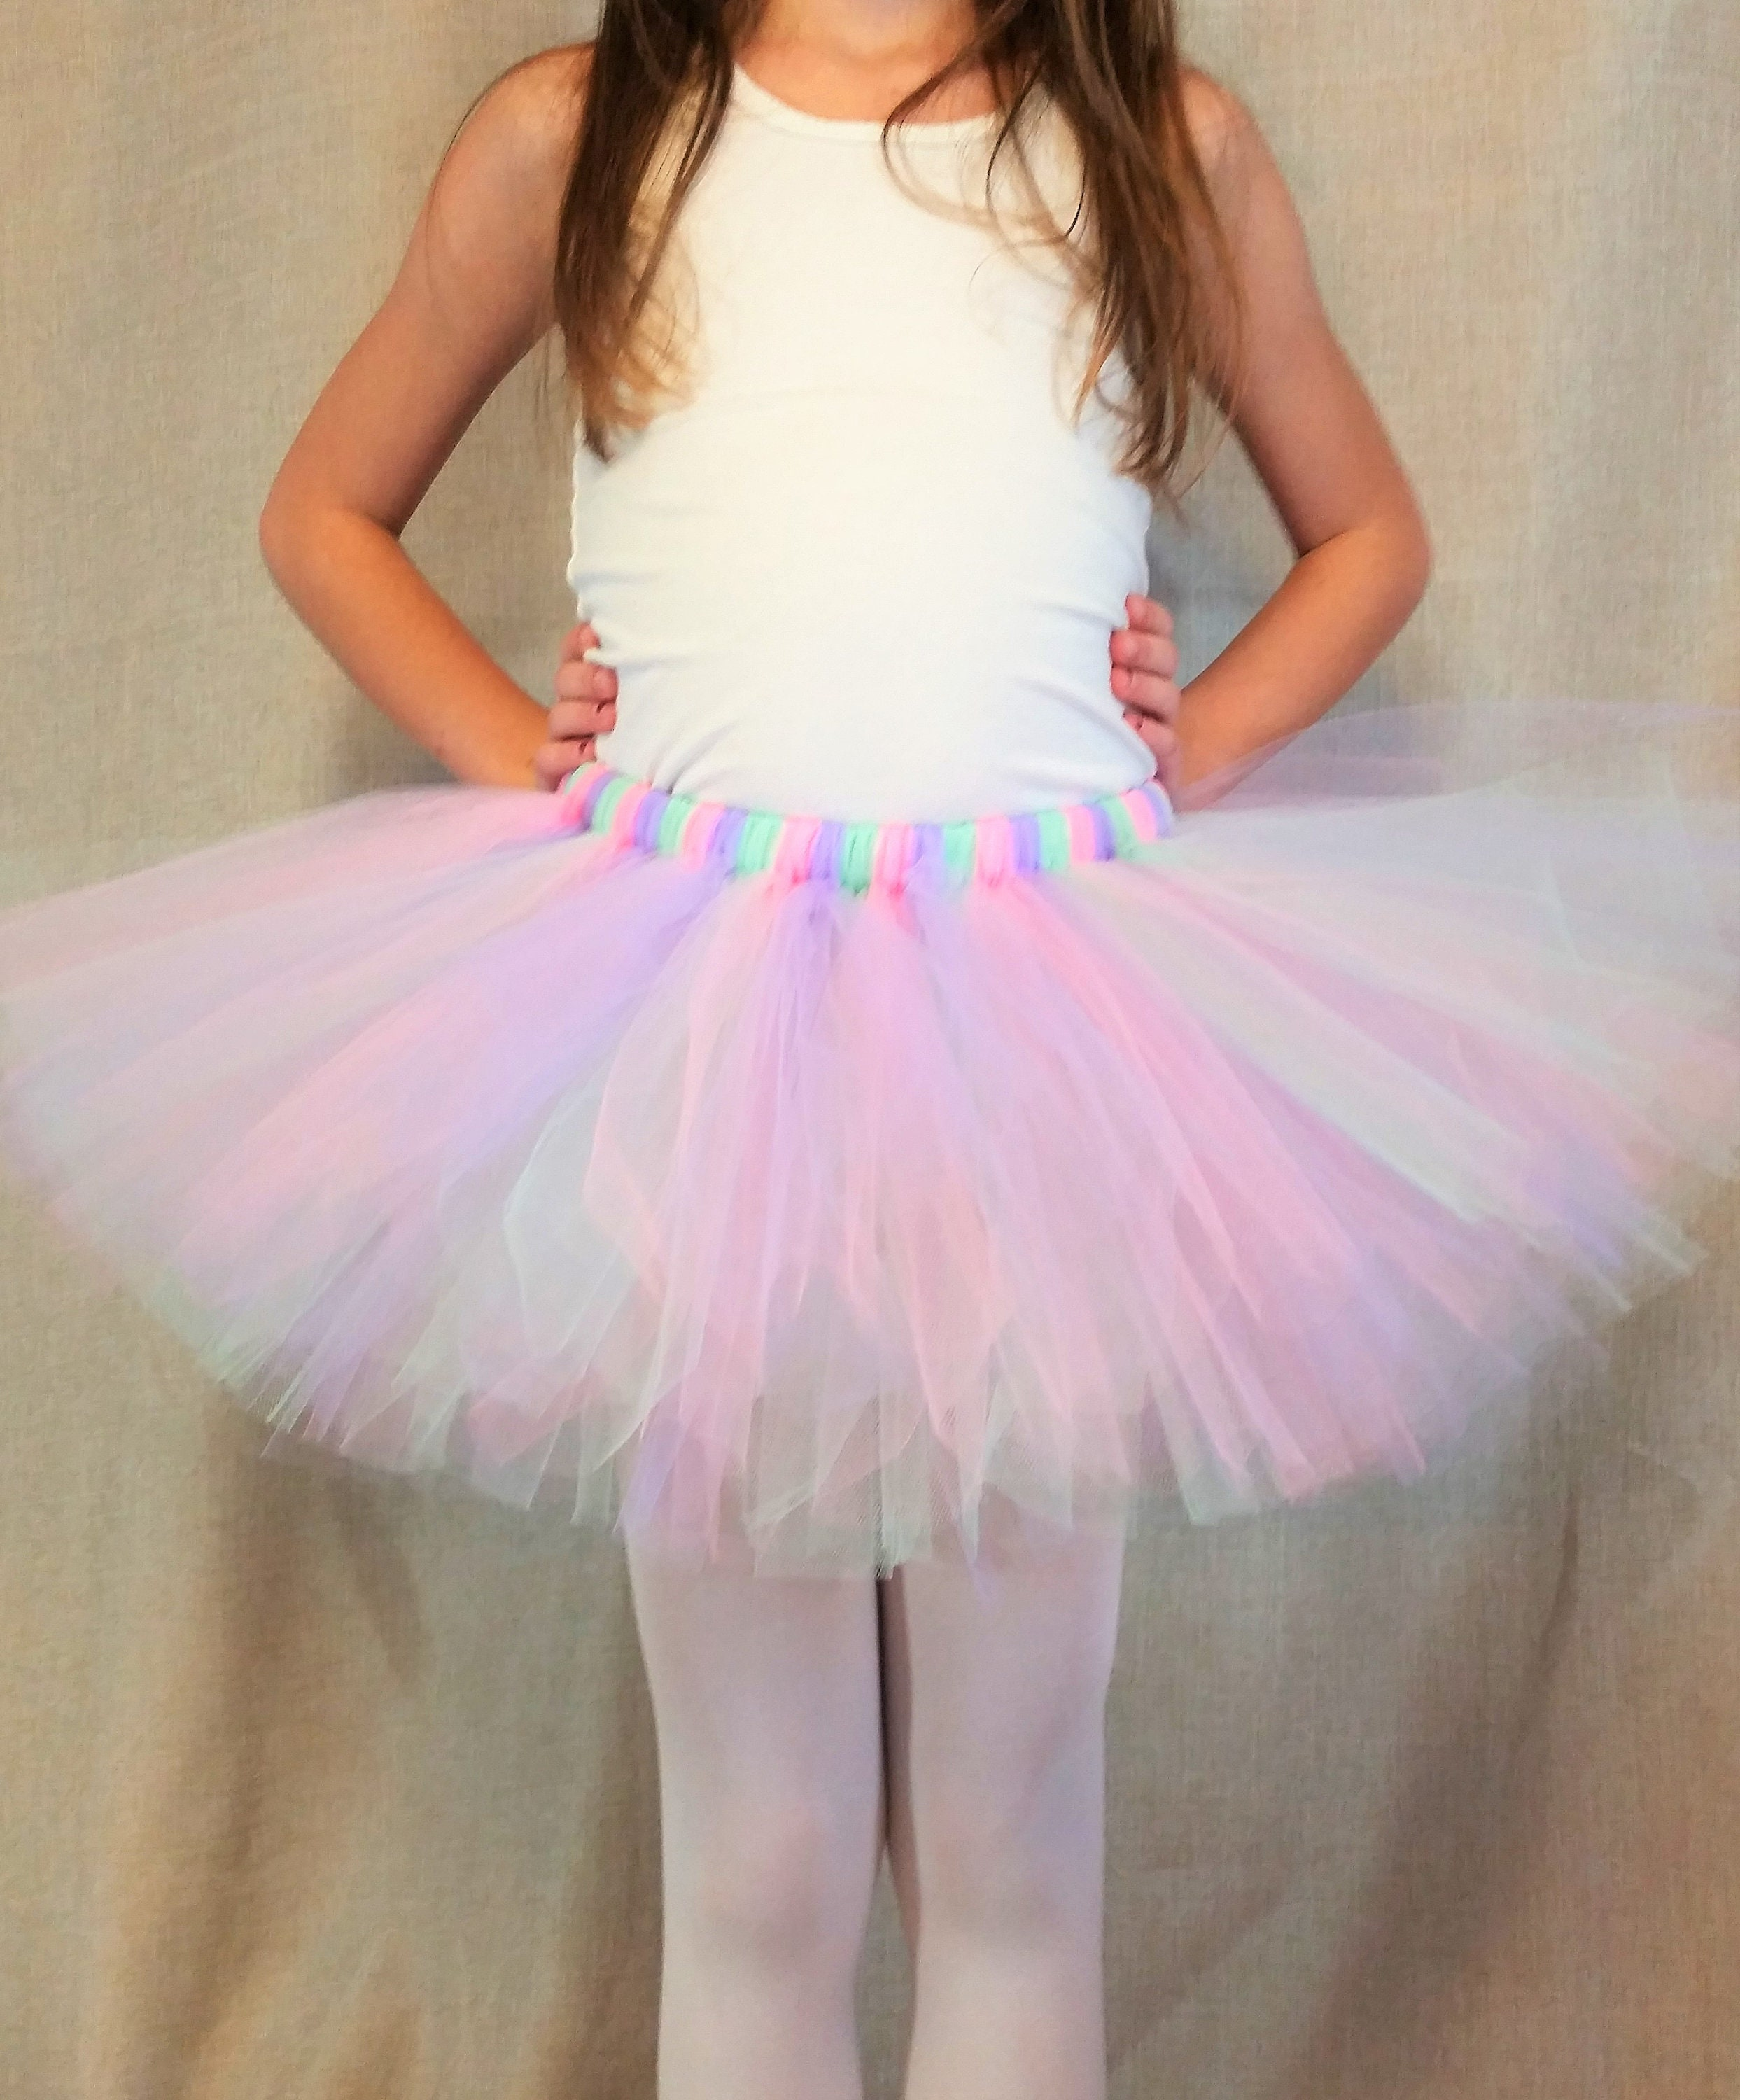 b73c856c6d Pink Lavender Mint Tutu Skirt, Multicolor Tutu, Halloween Costume Tutu,  Birthday Party Outfit, Photo Prop, Ballerina Tutu, Gift, Dress Up